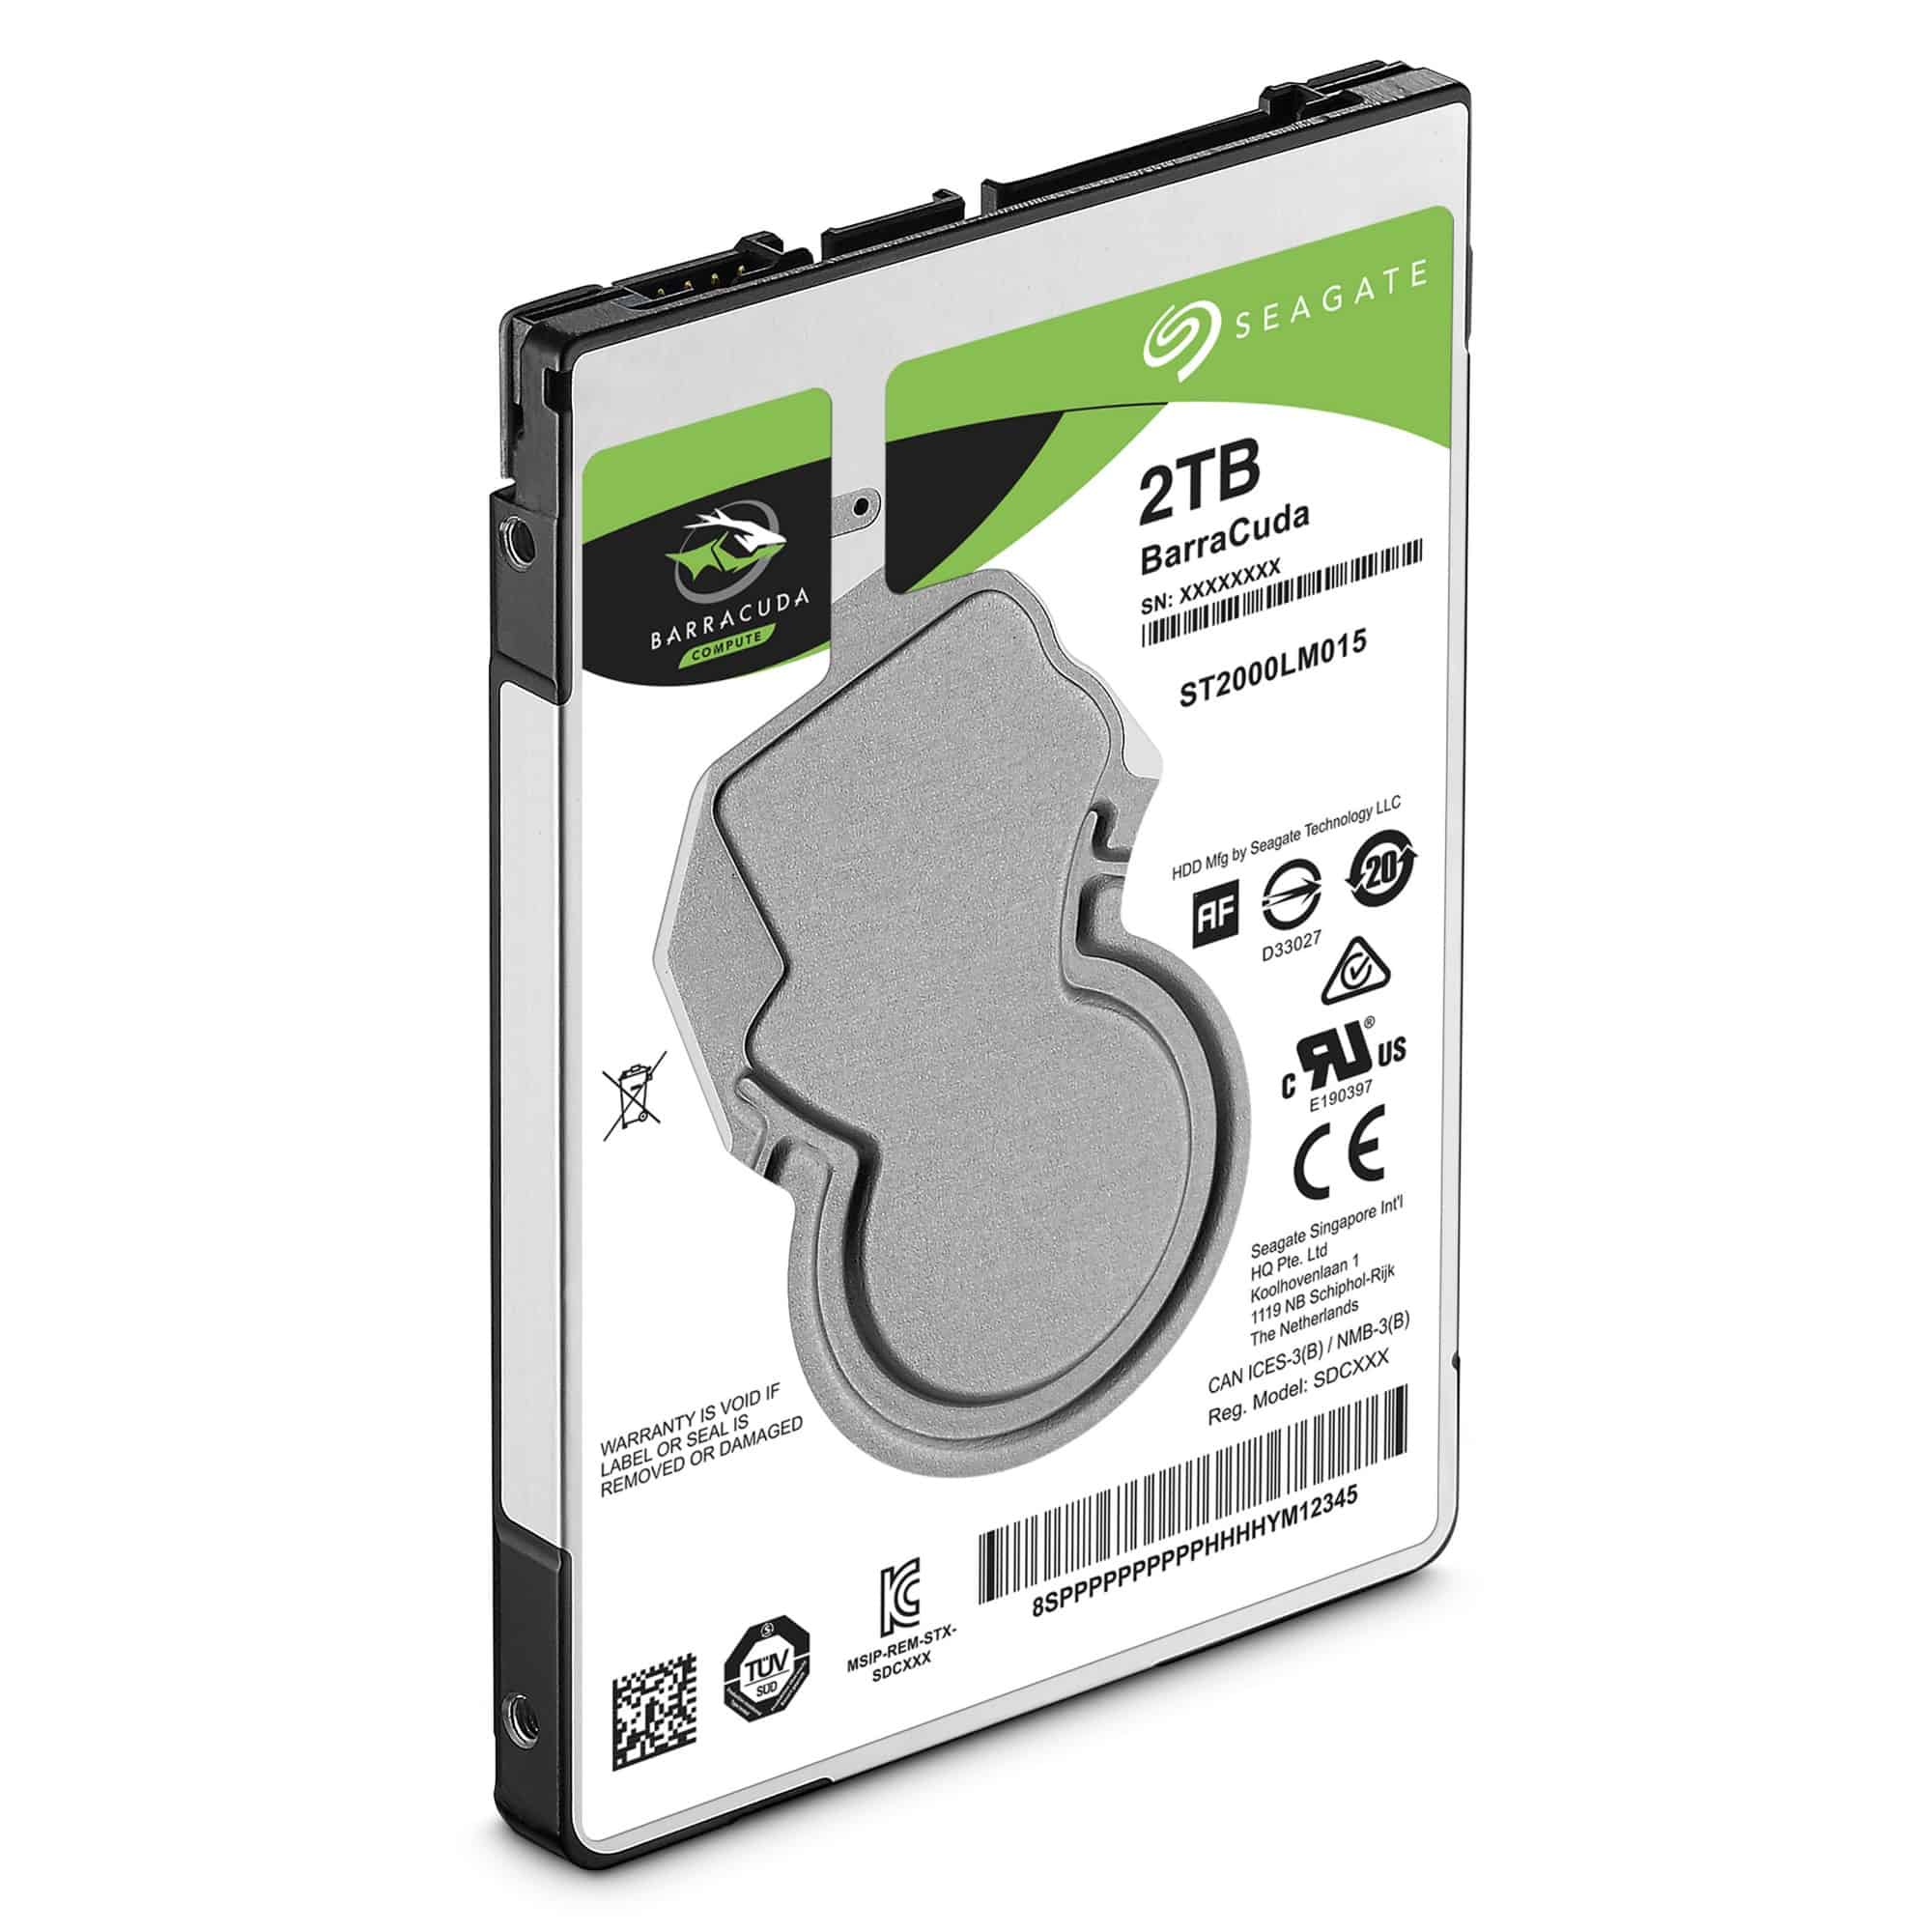 Seagate BarraCuda 2.5″ Hard Drive 500GB/1TB/2TB